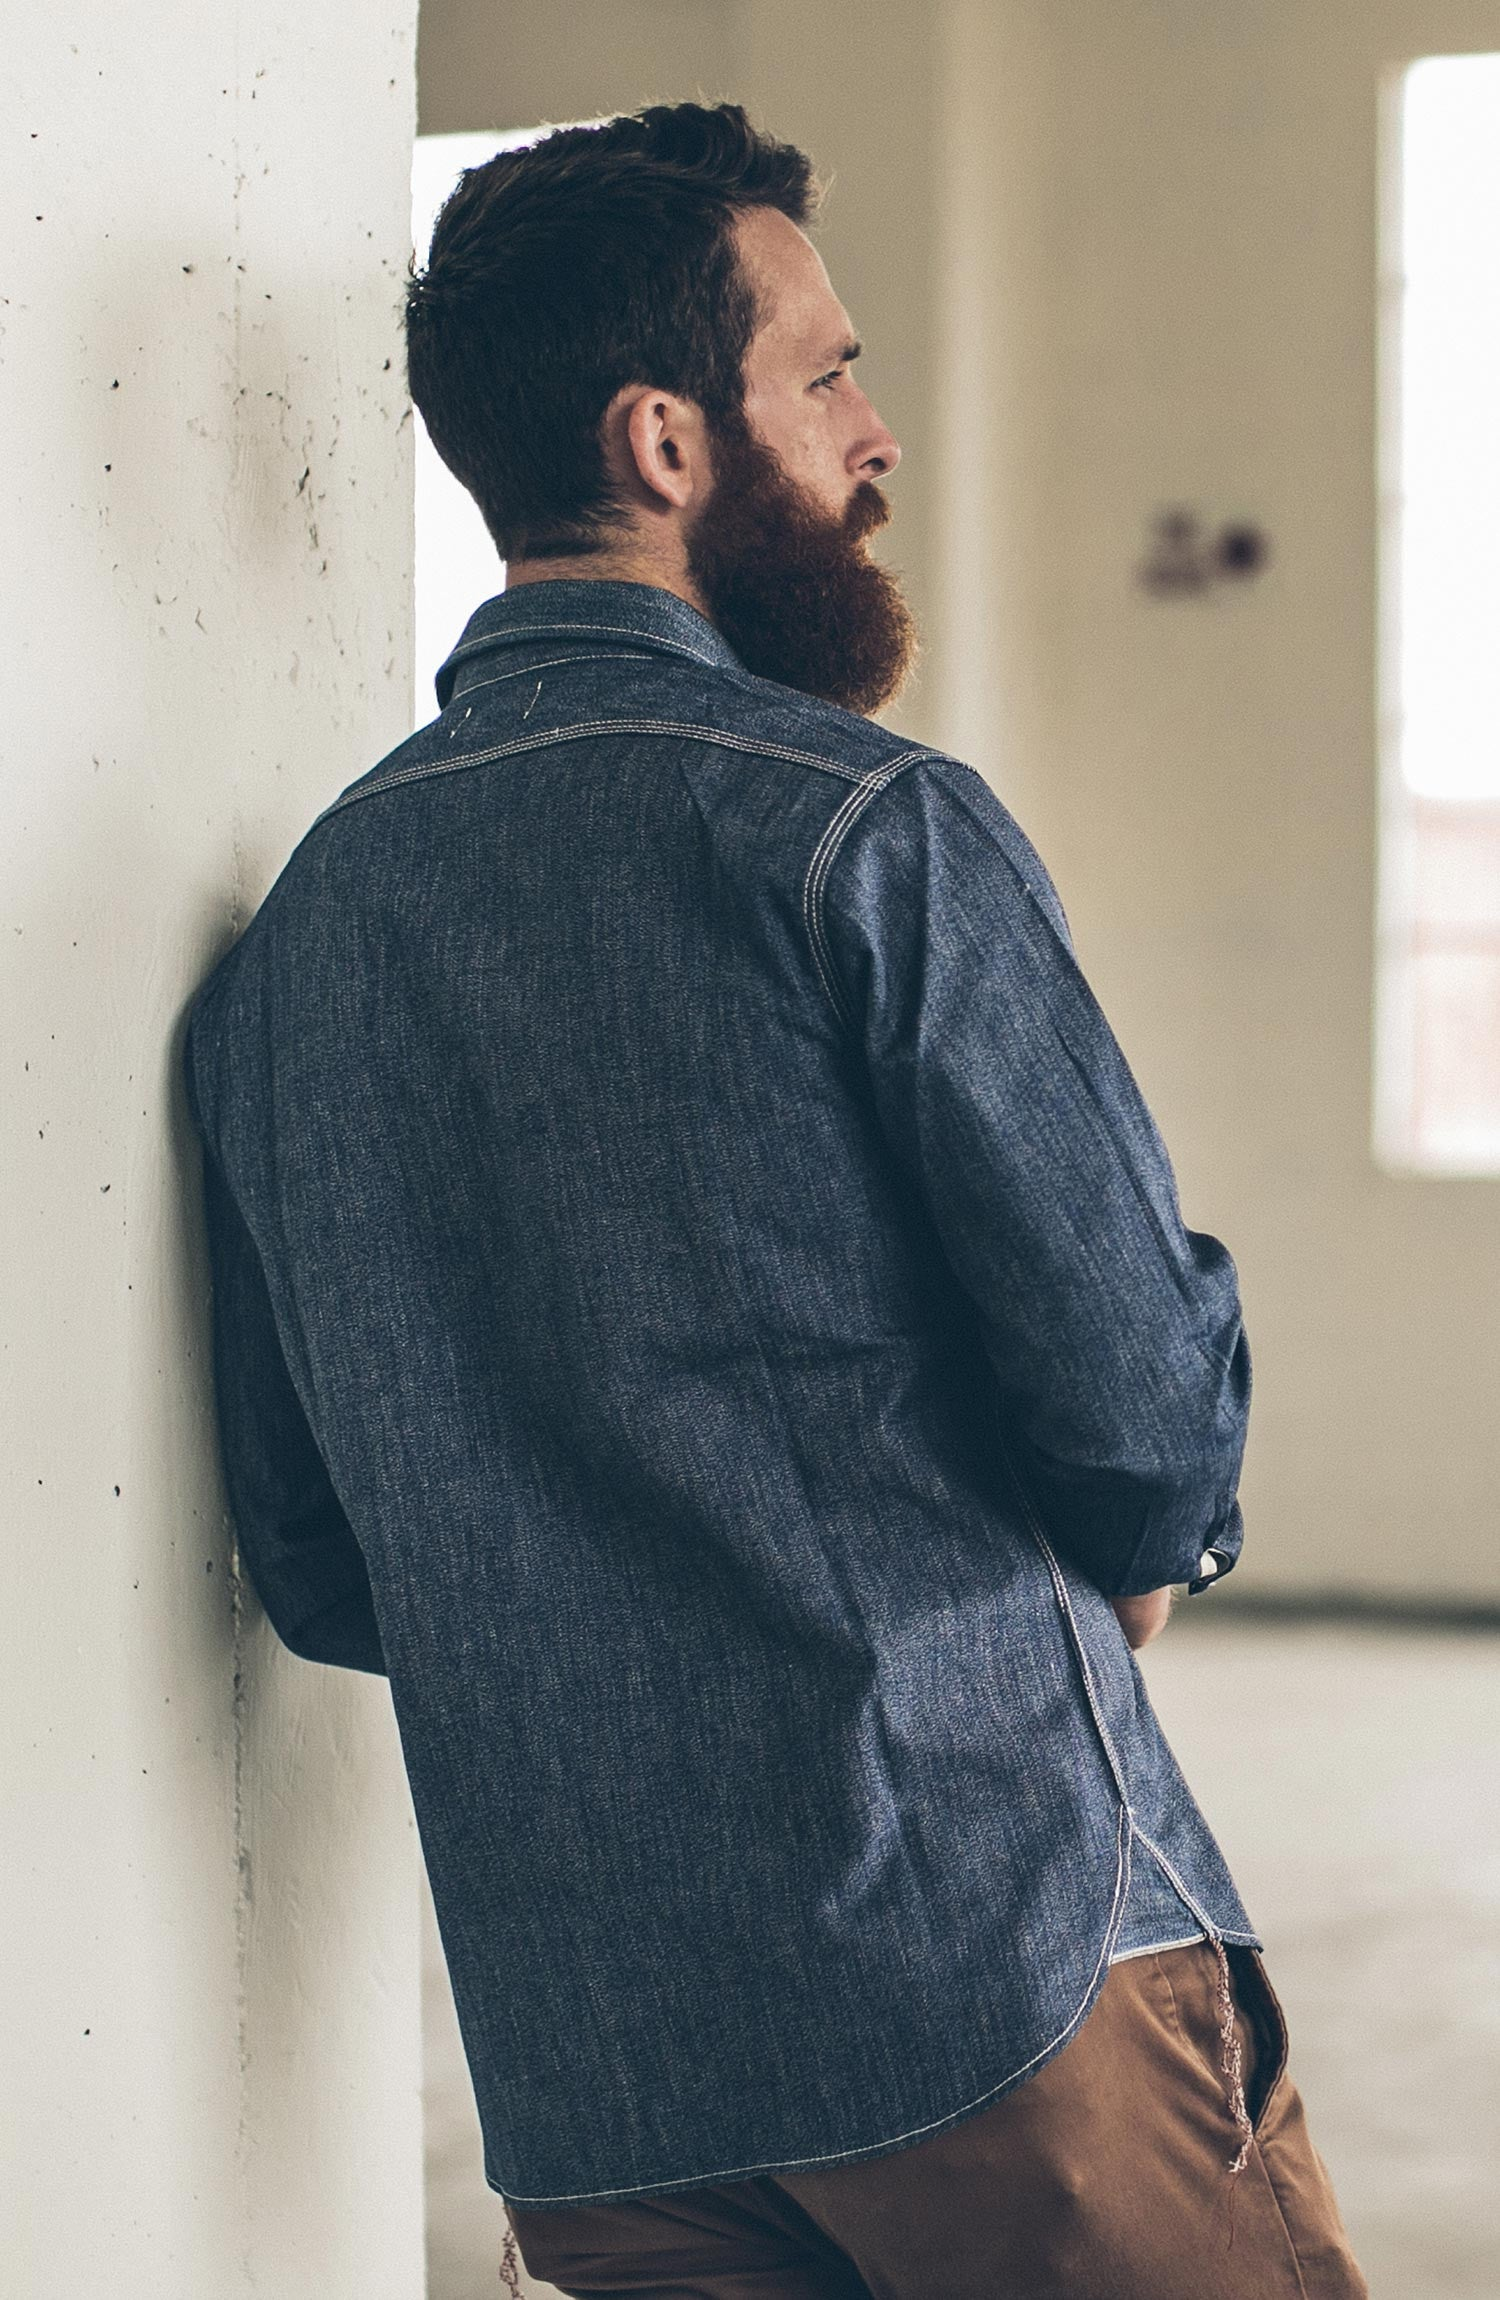 2017 - The Indigo Selvage Series